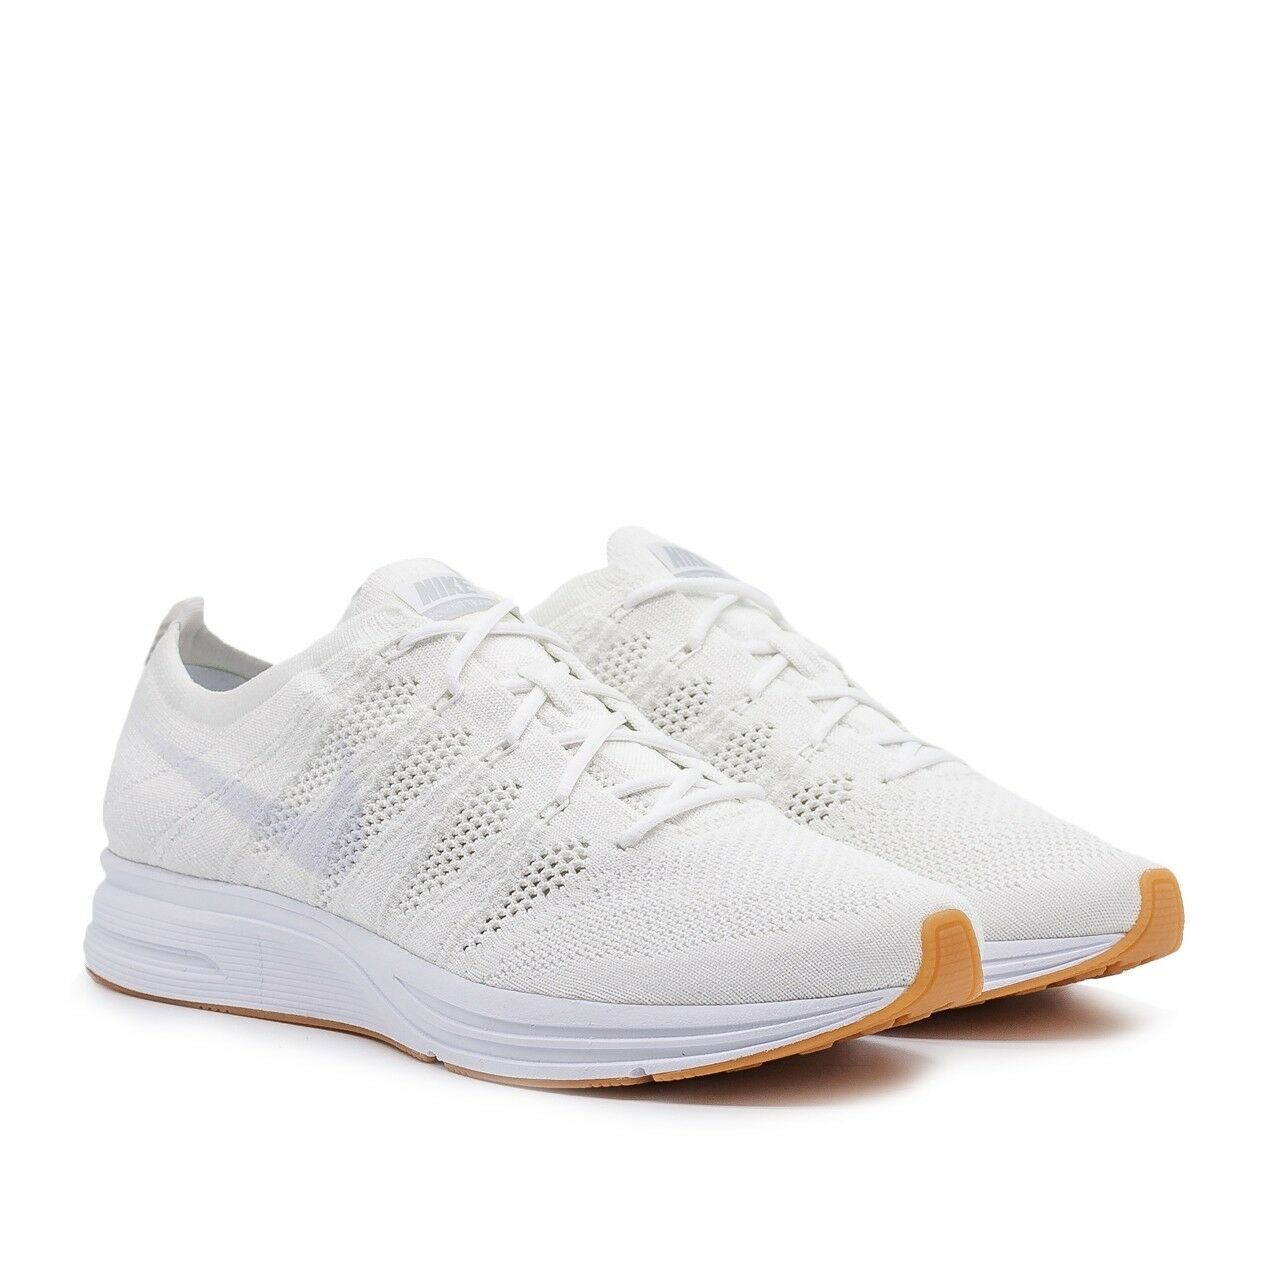 NIKE FLYKNIT TRAINER TRIPLE WHITE AH8396 102 BRAND NEW LIFESTYLE SHOES